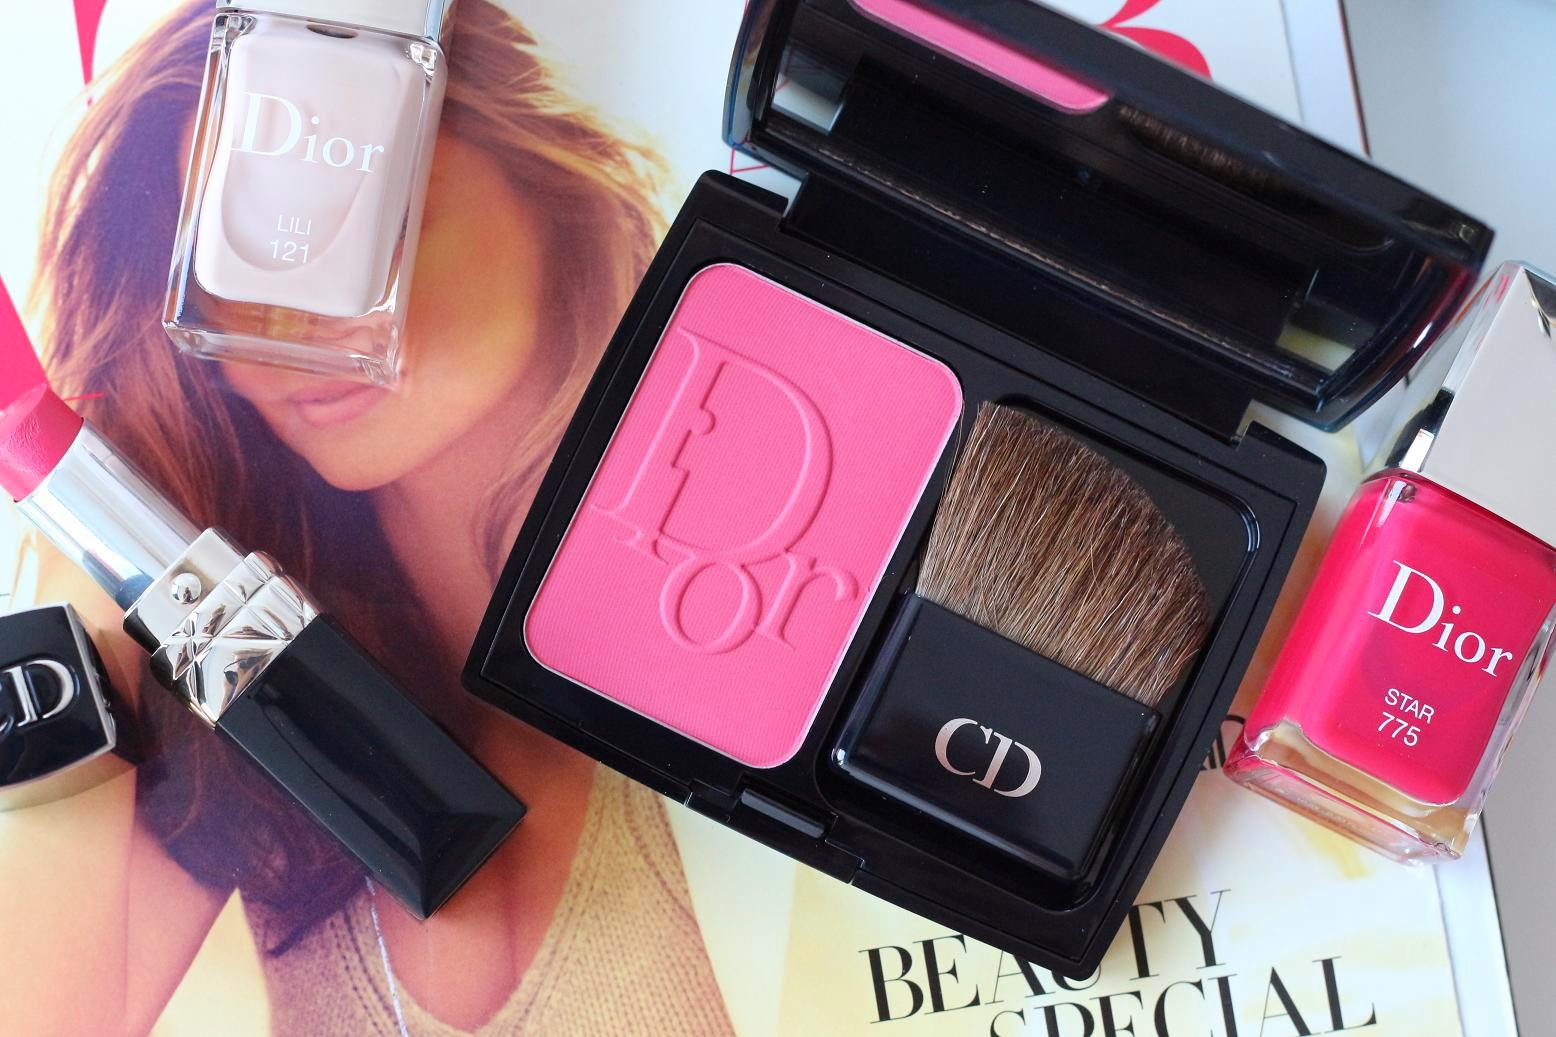 Diorblush in 881 Rose Corolle